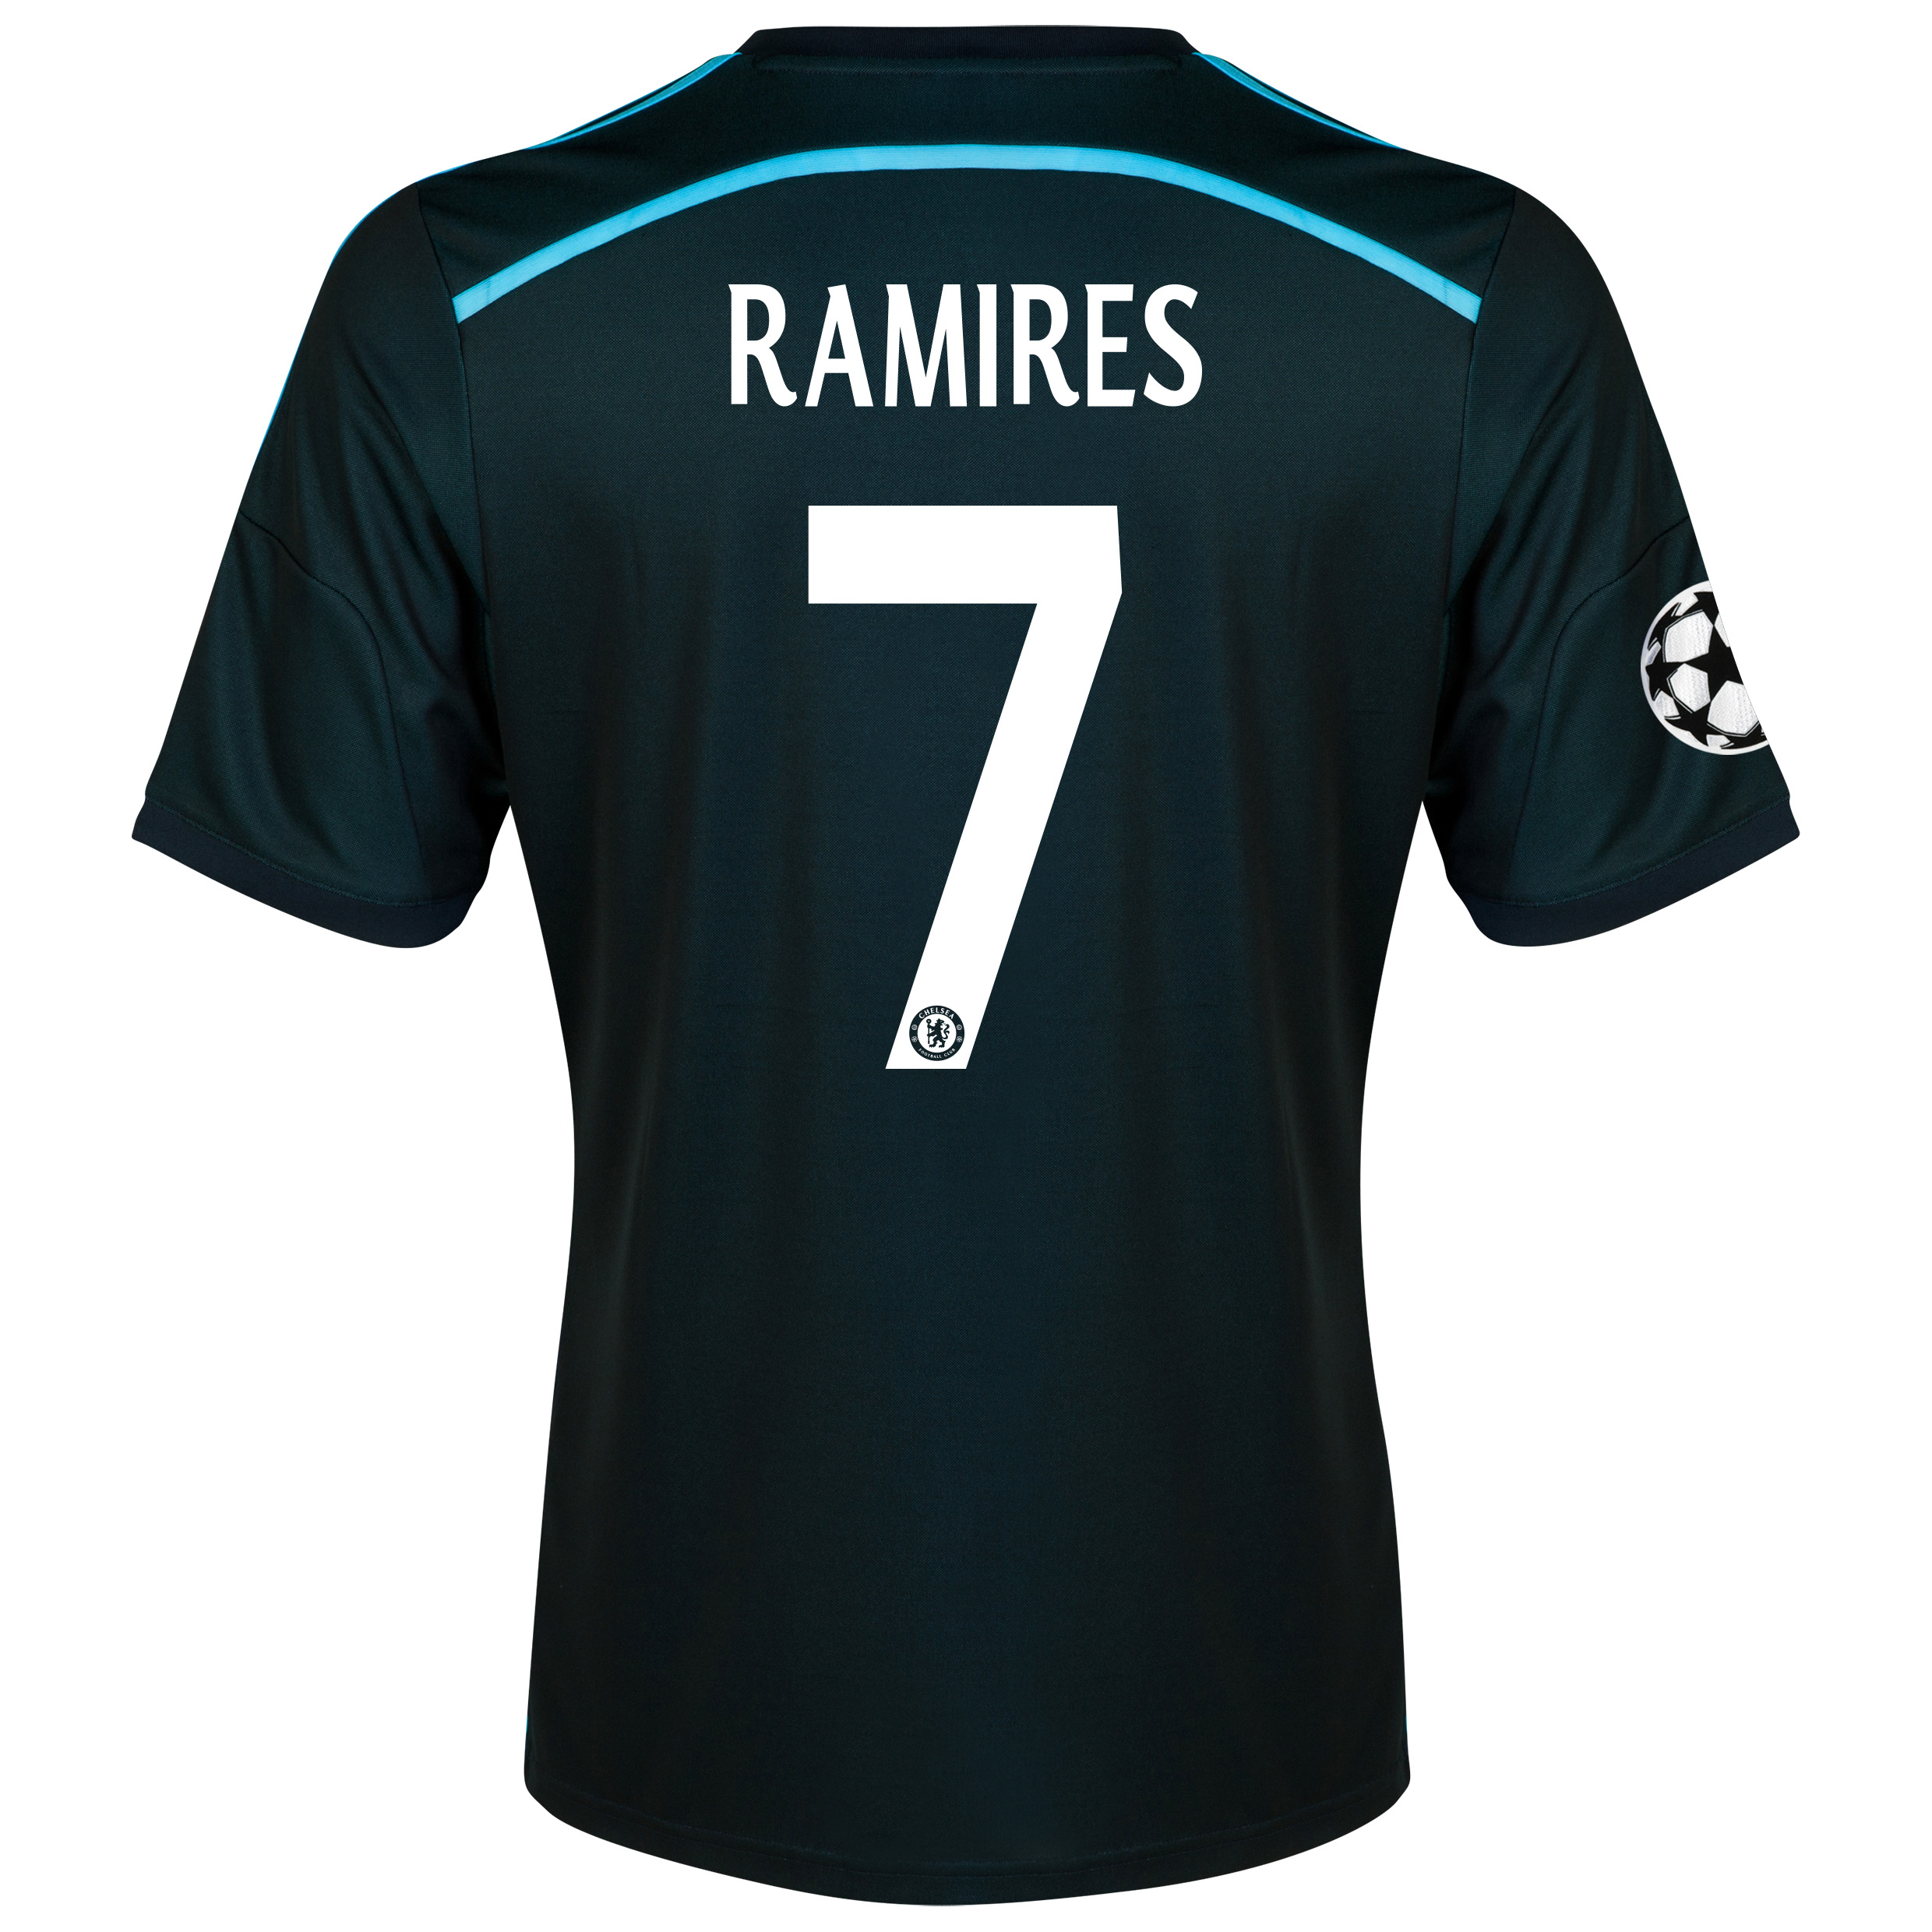 Chelsea UEFA Champions League Third Shirt 2014/15 with Ramires 7 printing